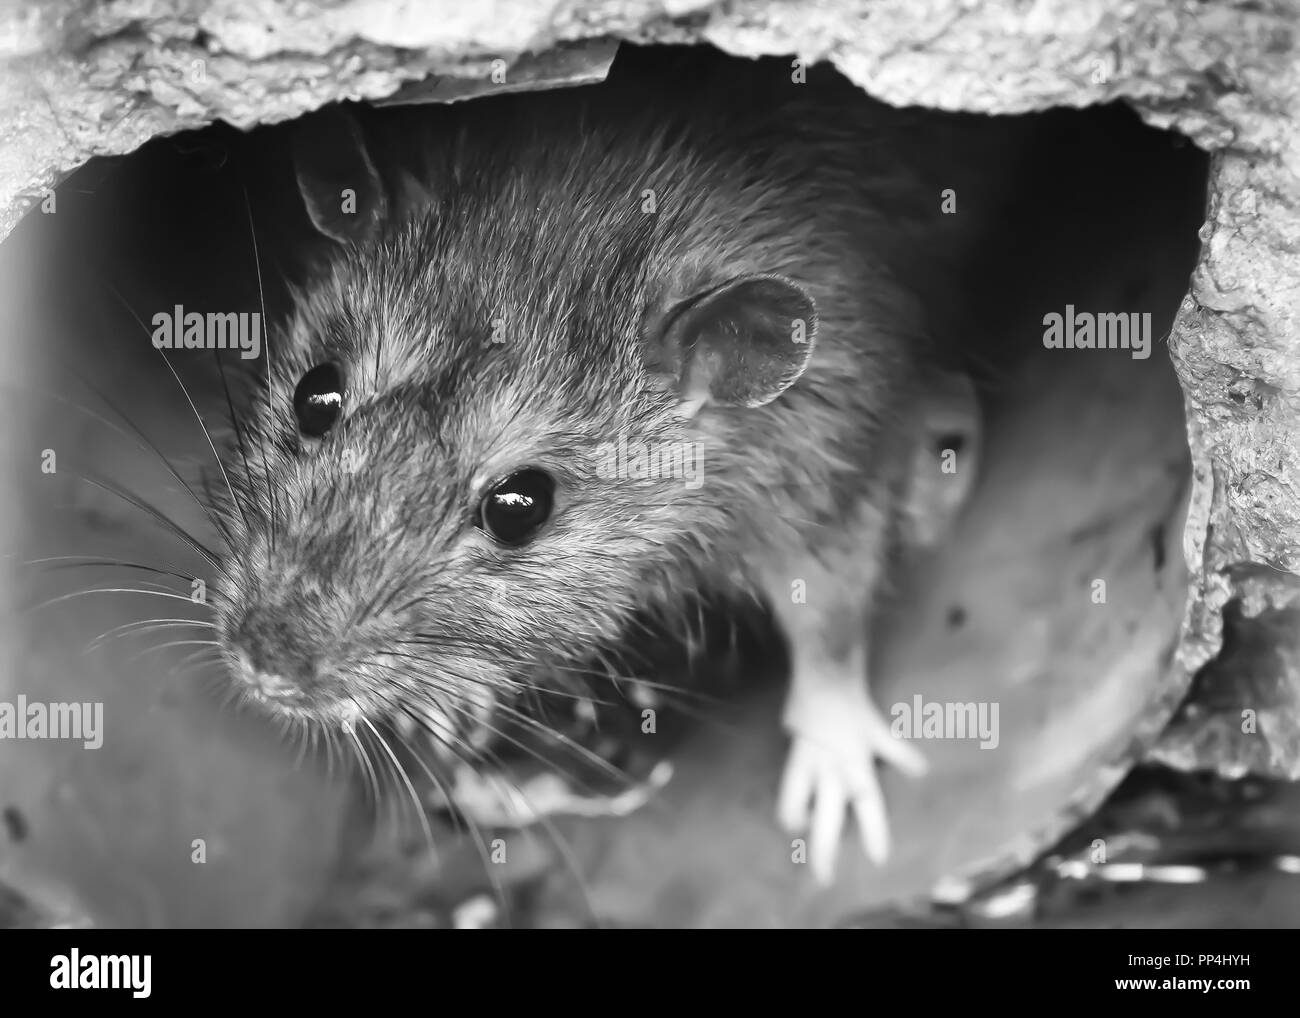 Closeup of rat on a sewer, drain grate, black and white - Stock Image